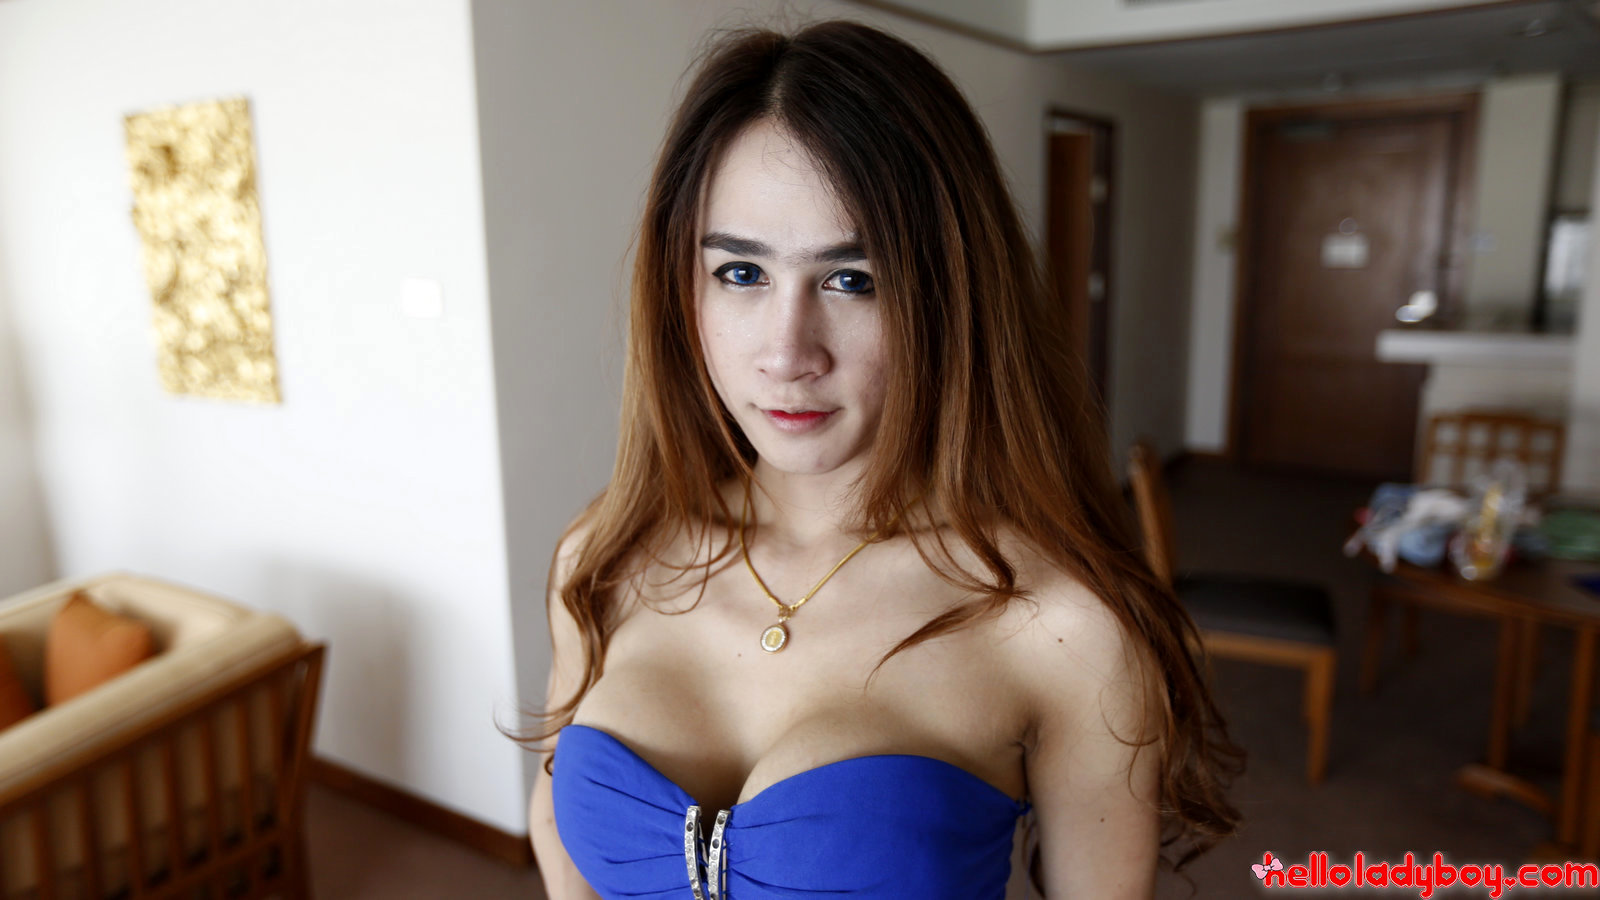 Asian Tgirl With Enormous Fake Boobs And Long Hair Gets Facial From Tourist